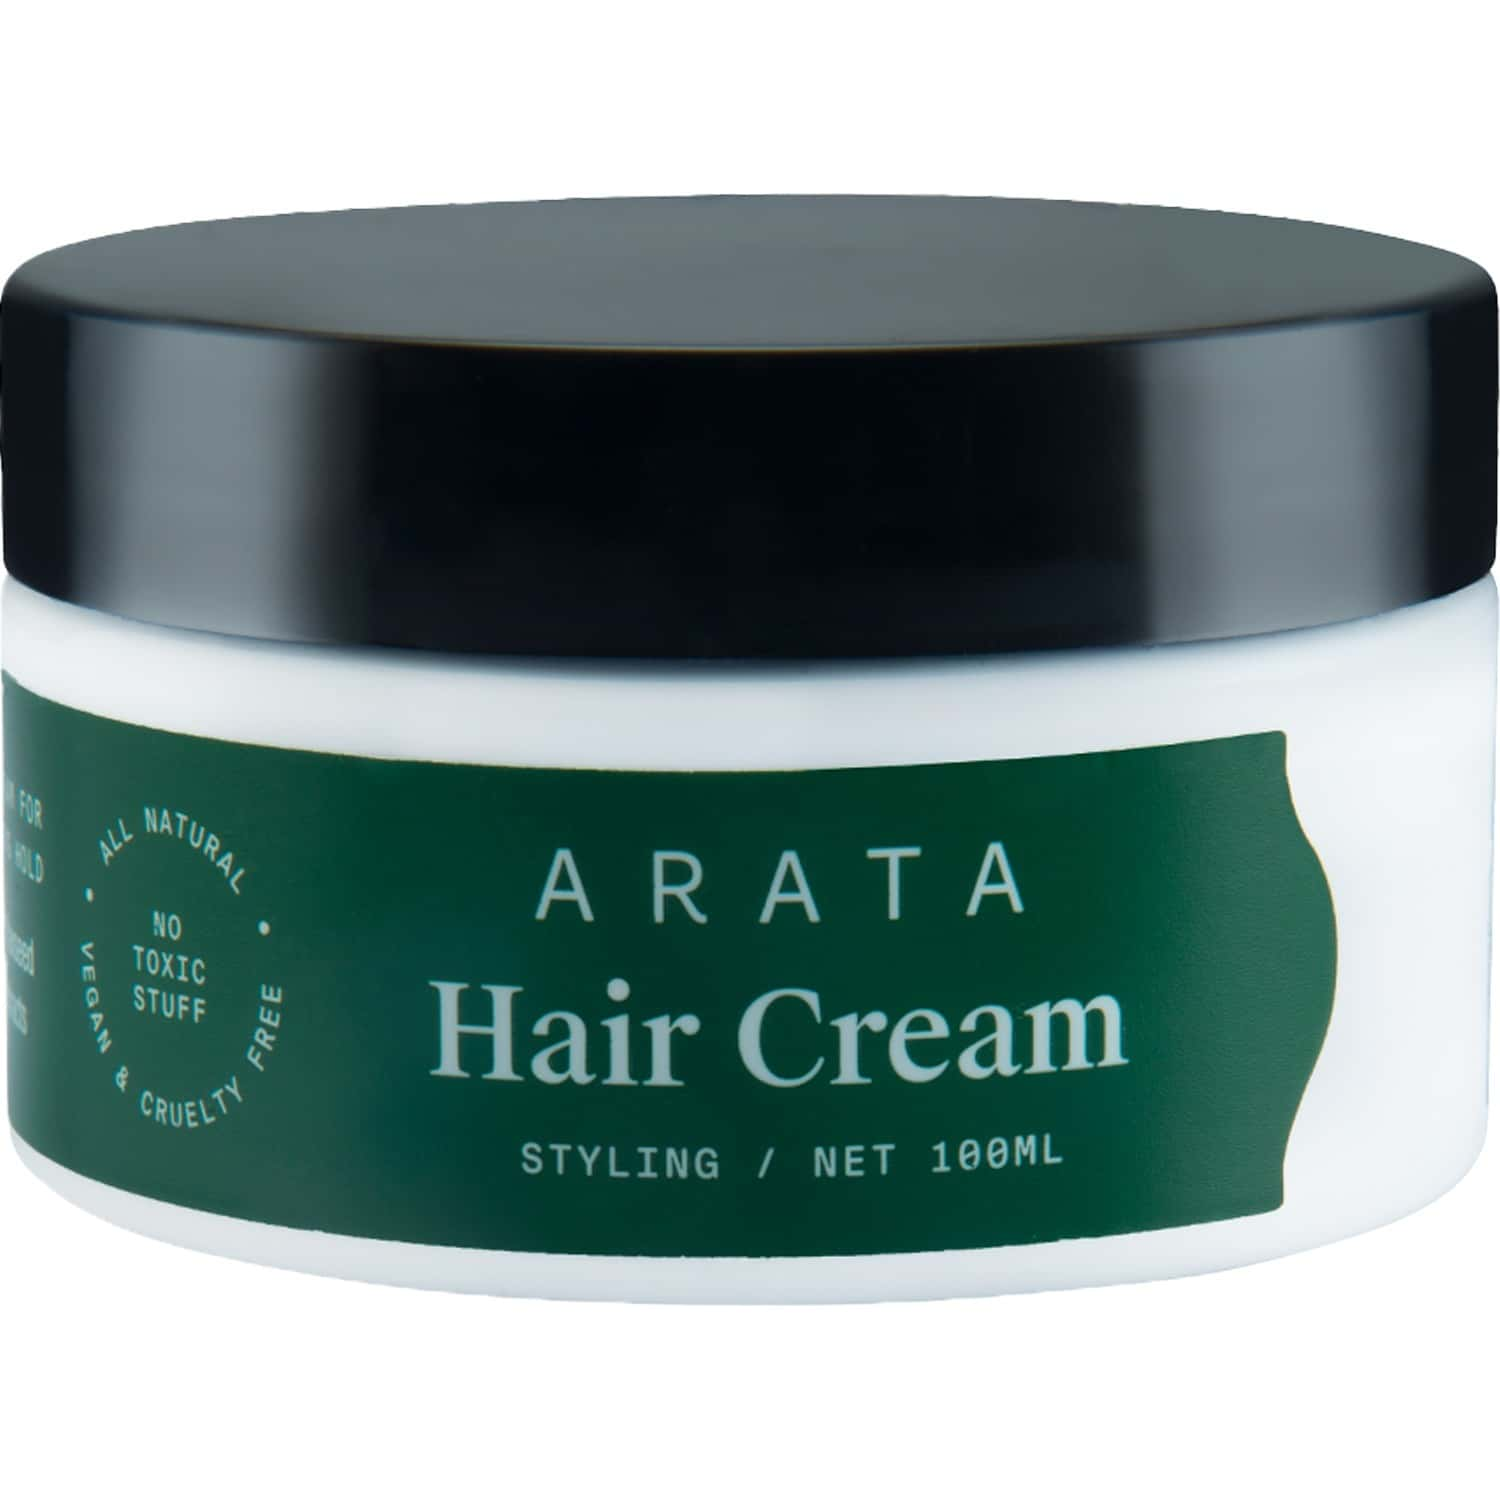 Arata Natural Styling & Hold Hair Cream With Organic Flaxseed & Olive Oil    All-natural, Vegan & Cruelty-free    Styling & Hair Growth Formula For Women & Men - (100 G)